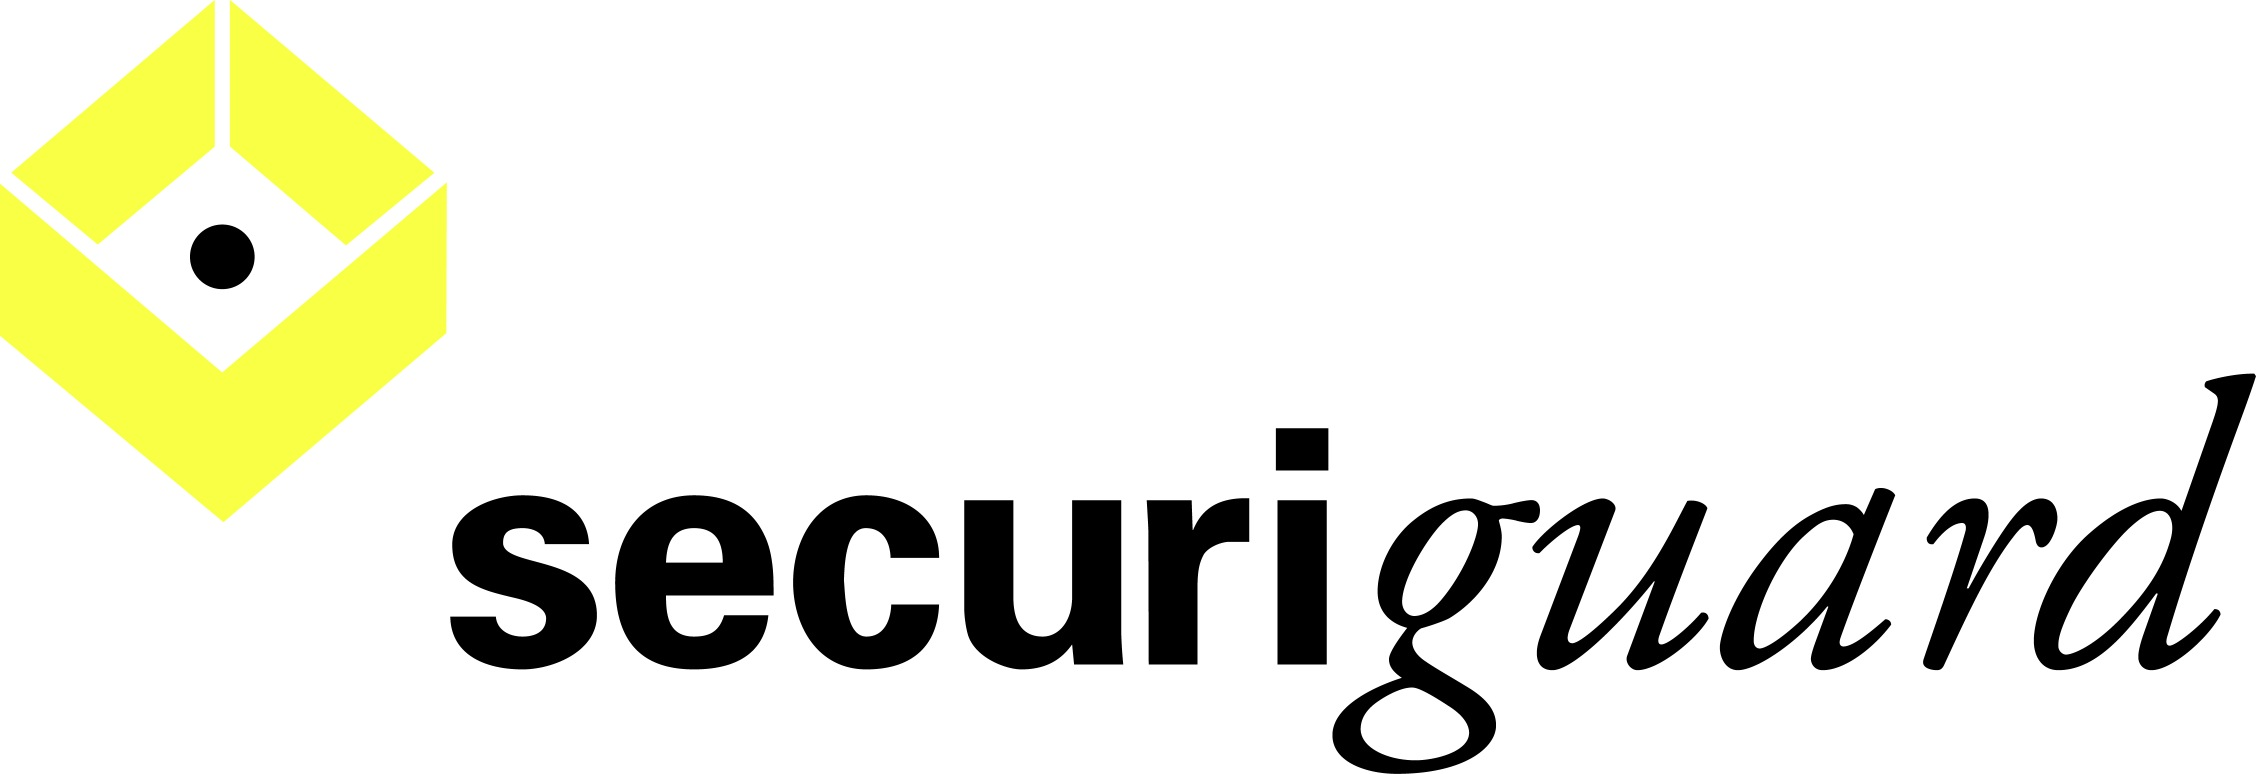 Leading Security Company Securiguard International Selects